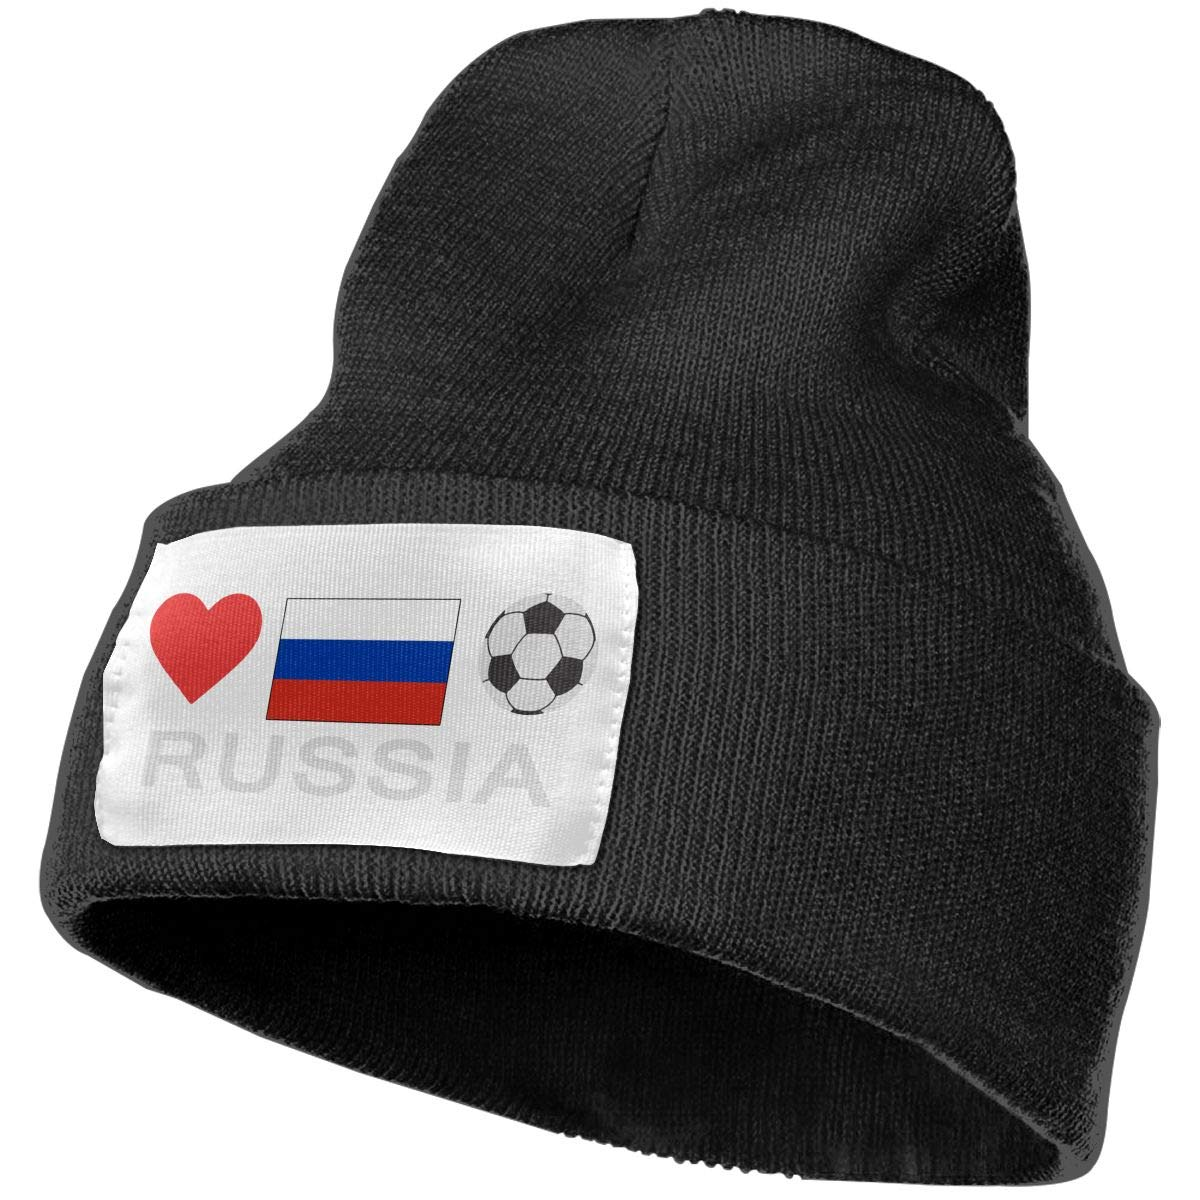 Russia Football Russia Soccer Women and Men Skull Caps Winter Warm Stretchy Knit Beanie Hats